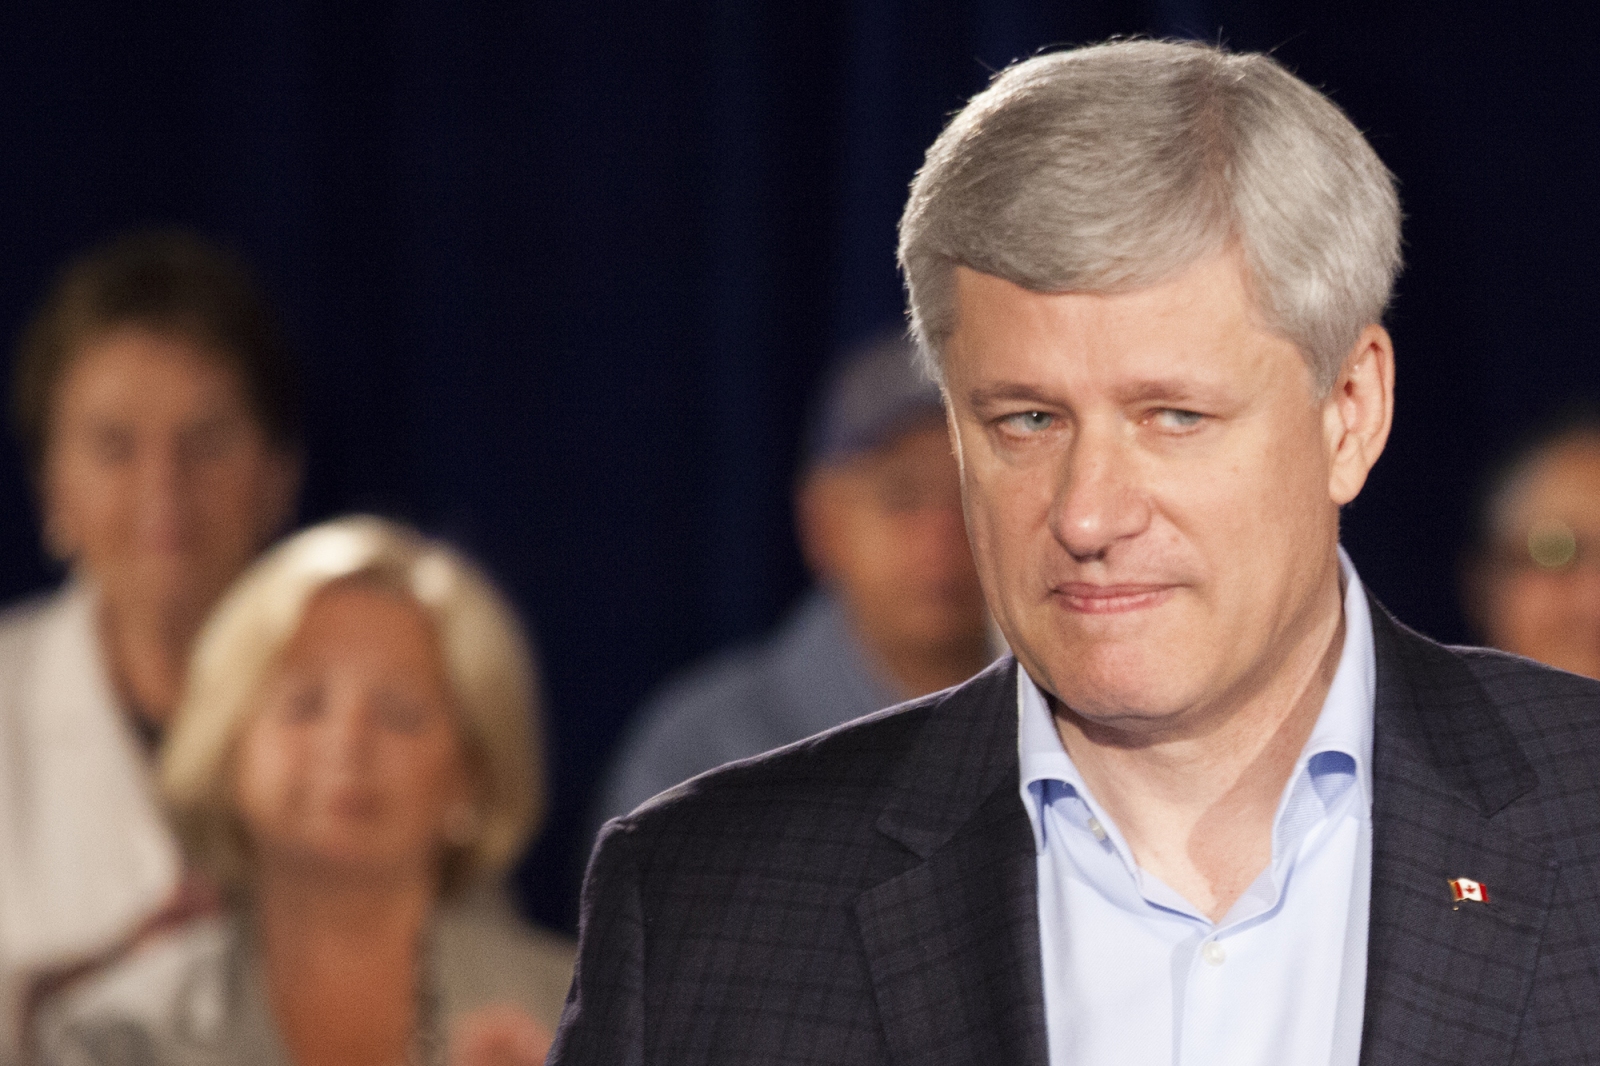 stephen harper grimaces at reporters in north vancouver - mychaylo prystupa national observer